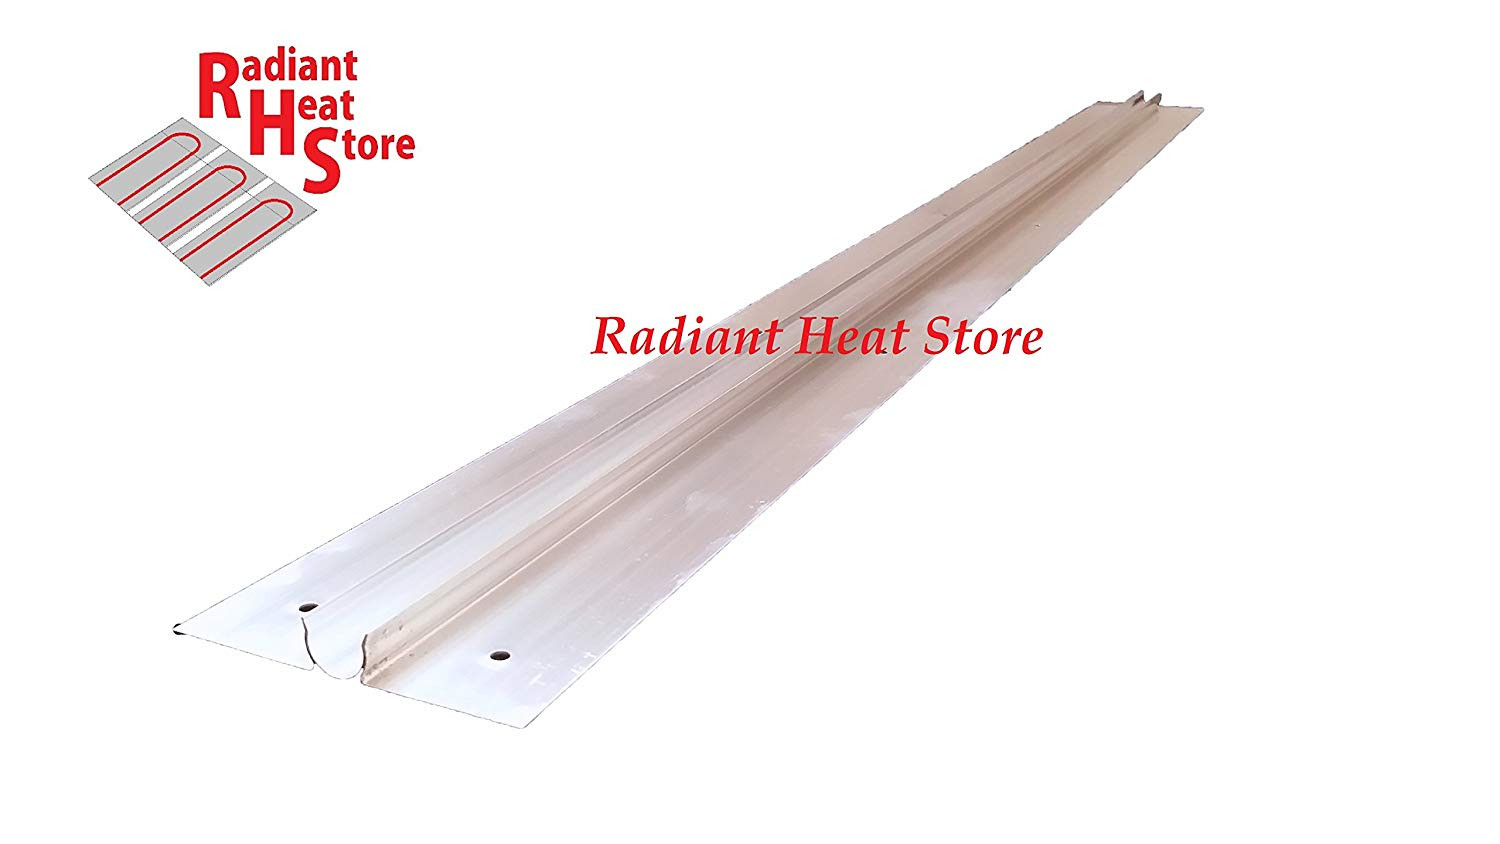 radiant heat and hardwood floors of radiant heat store 50 heavy gauge aluminum heat transfer plates within radiant heat store 50 heavy gauge aluminum heat transfer plates omega snap in 1 2 pex tubing style amazon com